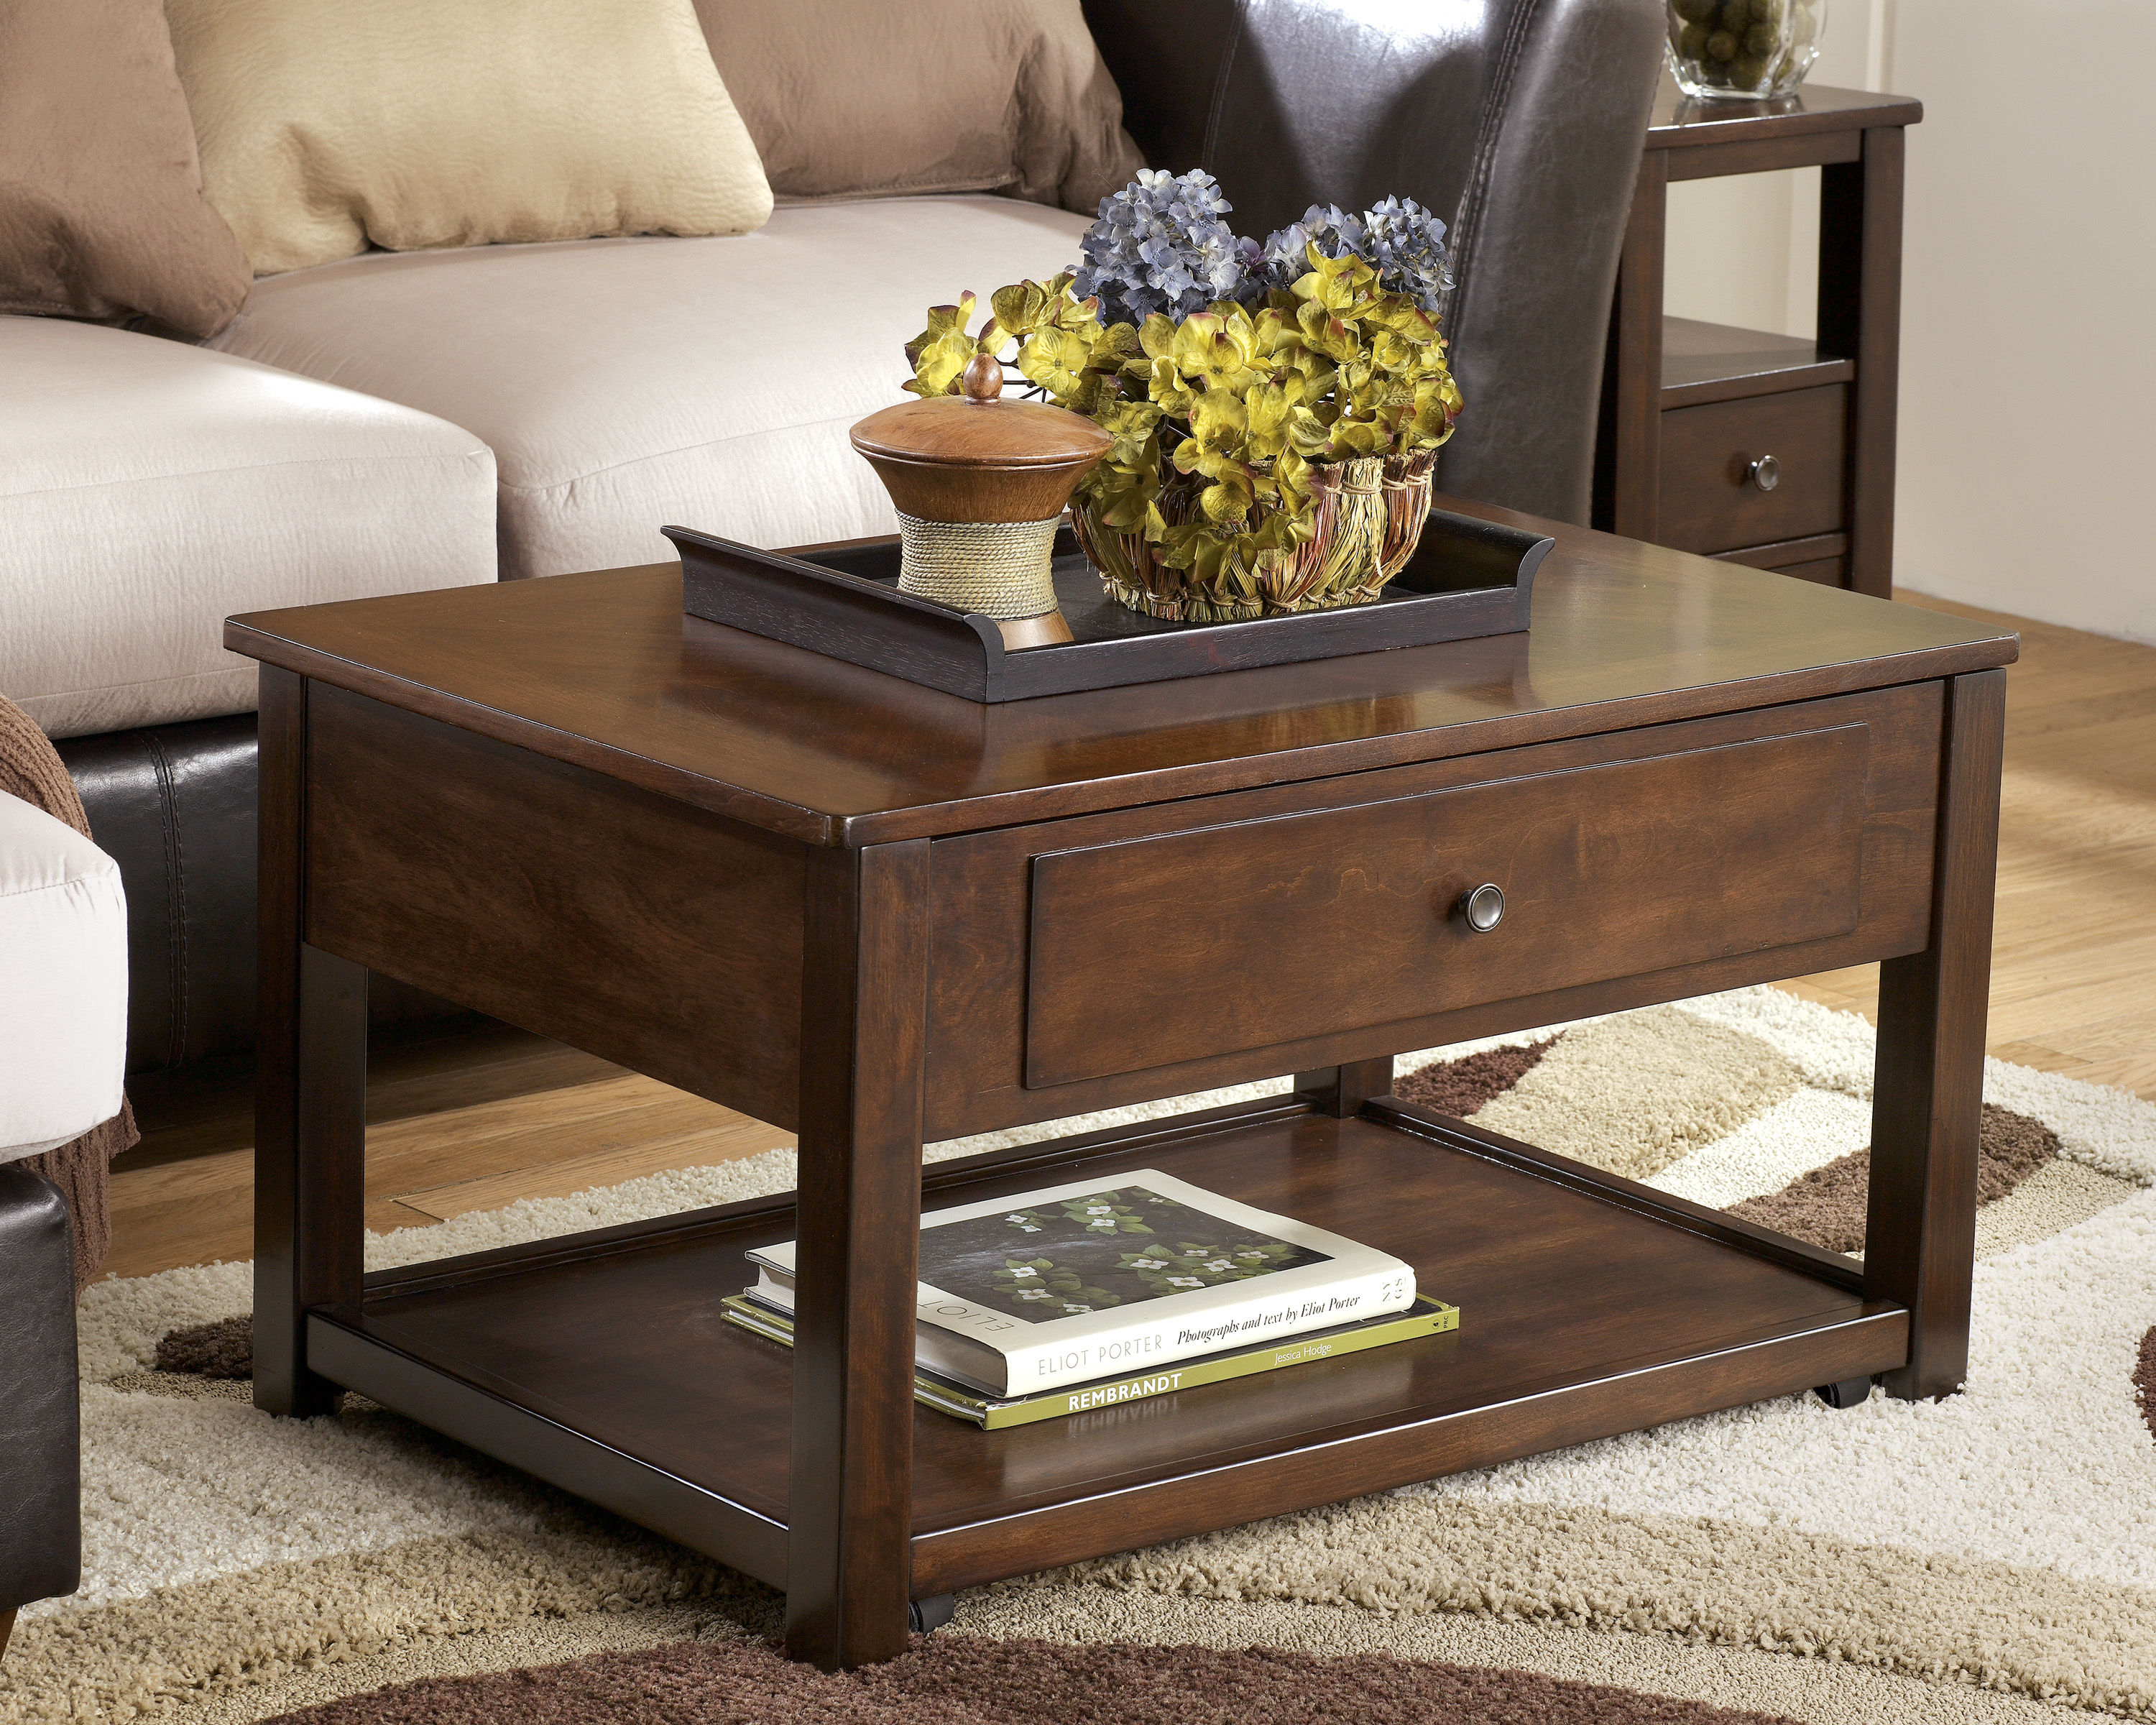 ashley furniture marion dark brown lift top cocktail table the end tables coffee click enlarge liberty rugs leather loveseat indoor wooden dog kennel plans stand small and lazy